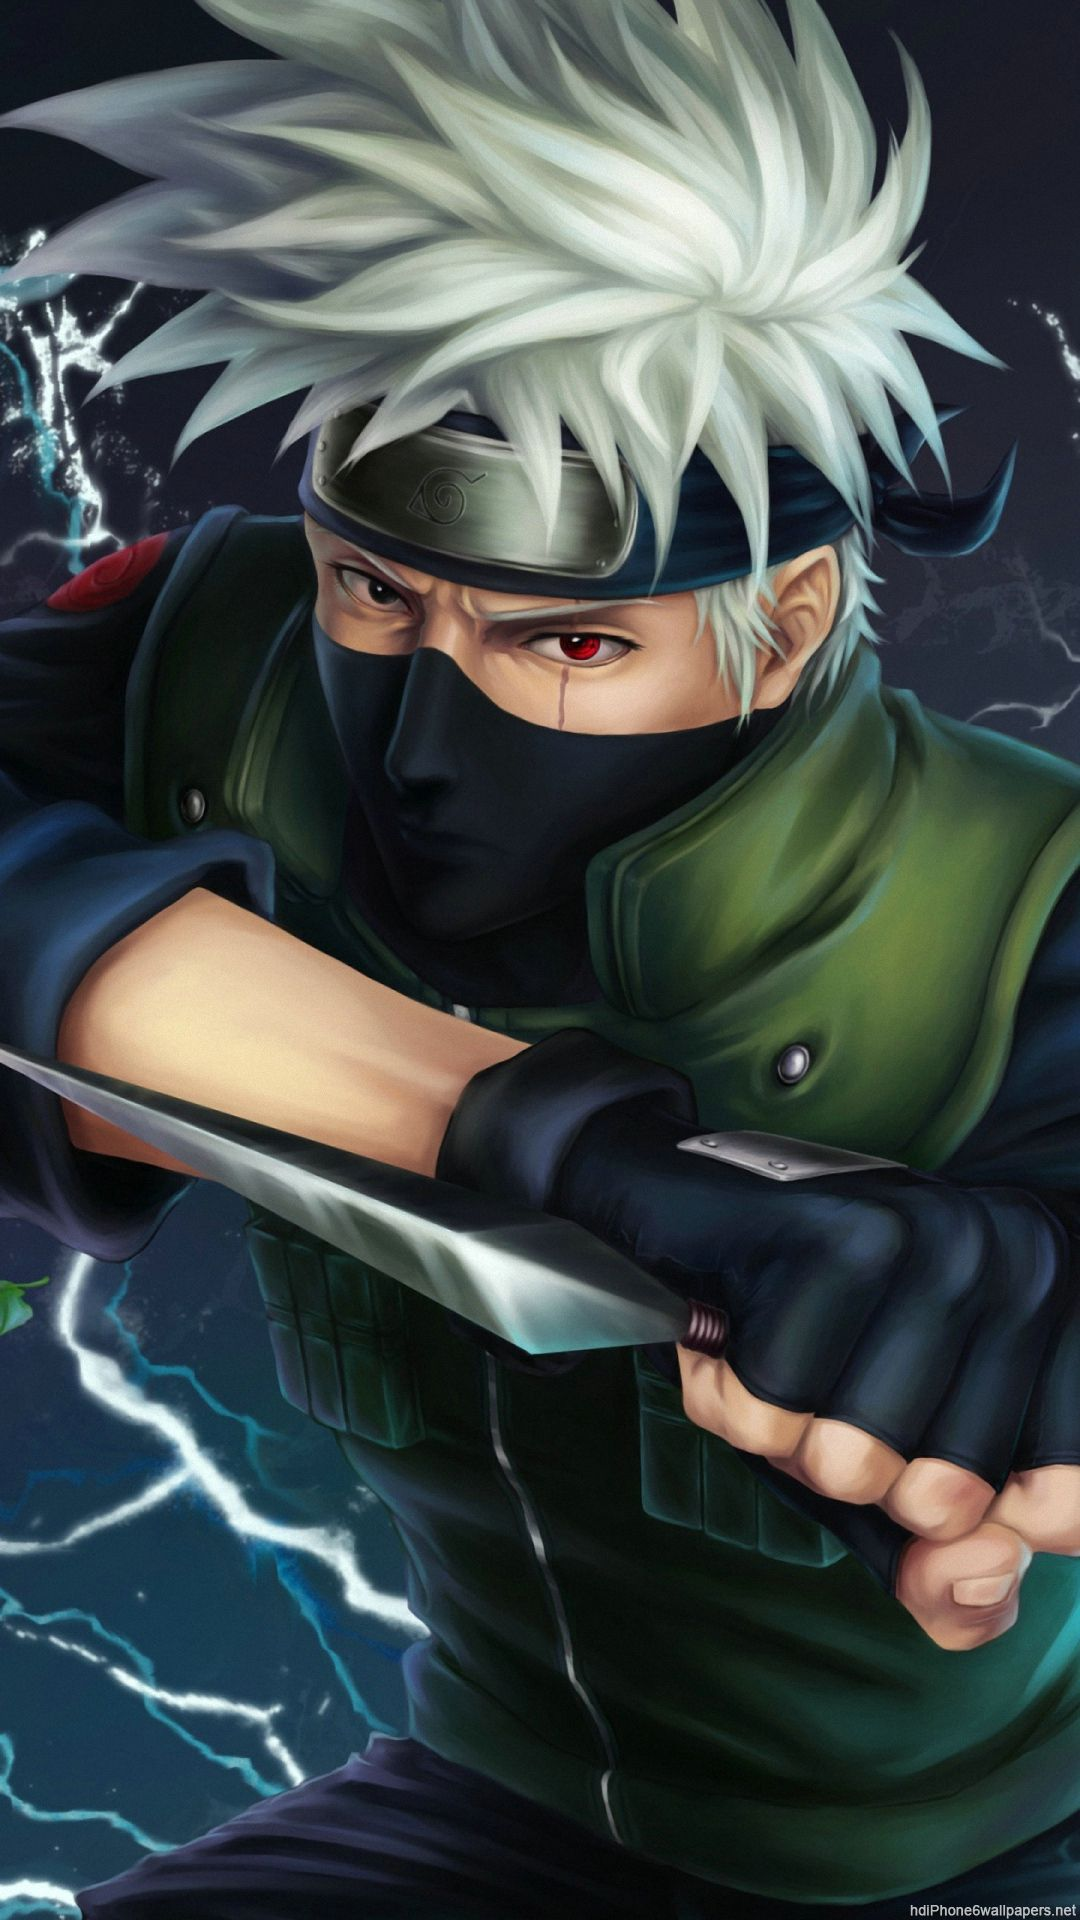 3D Kakashi Wallpaper iPhone   2018 iPhone Wallpapers   Anime     3D Kakashi Wallpaper iPhone is high definition phone wallpaper  You can  make this wallpaper for your iPhone 5  6  7  8  X backgrounds  Tablet